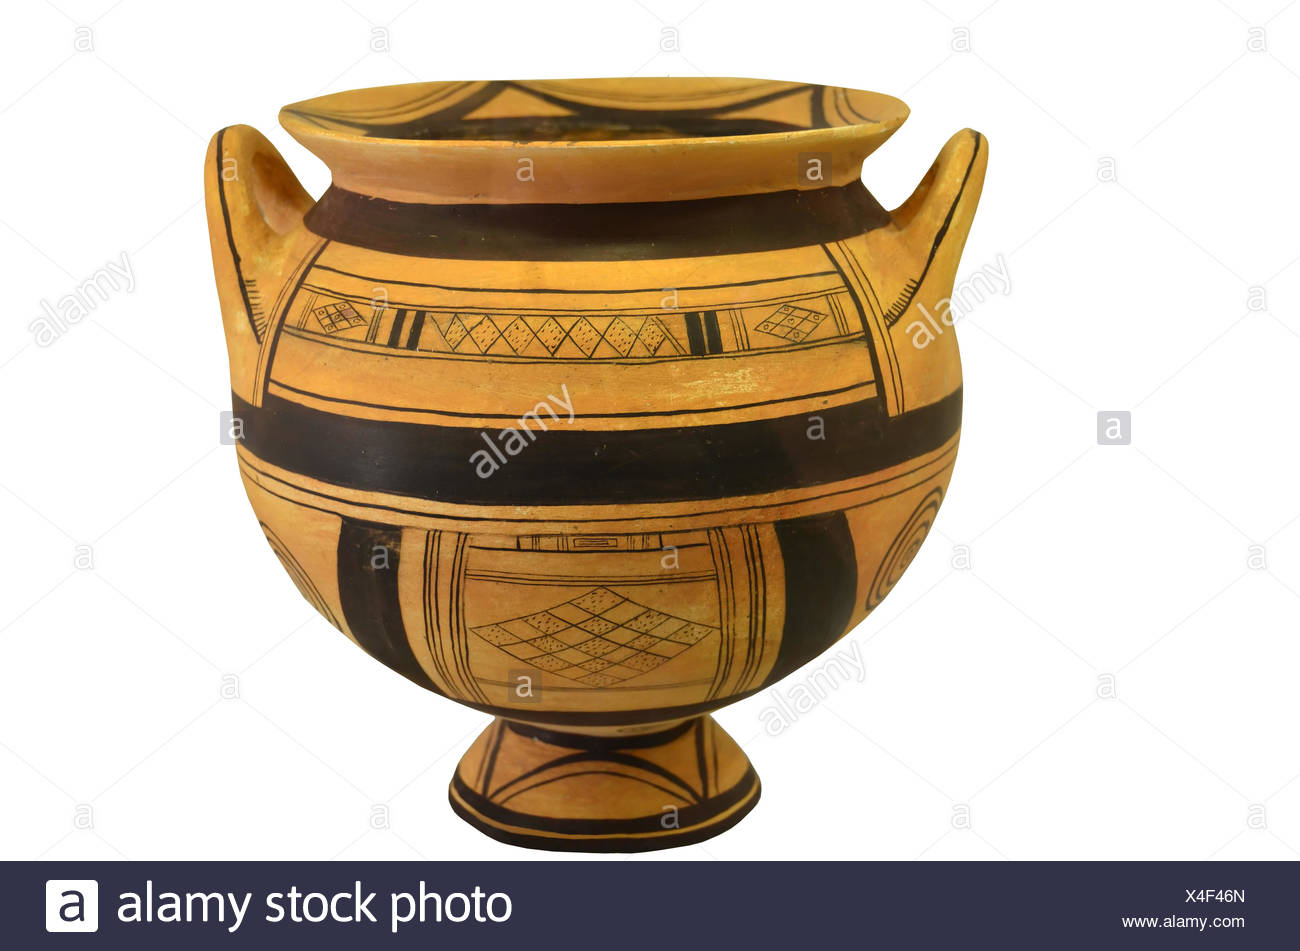 Ancient greek vase stock photos ancient greek vase stock images an ancient greek vase from the geometric period isolation against a white background stock reviewsmspy